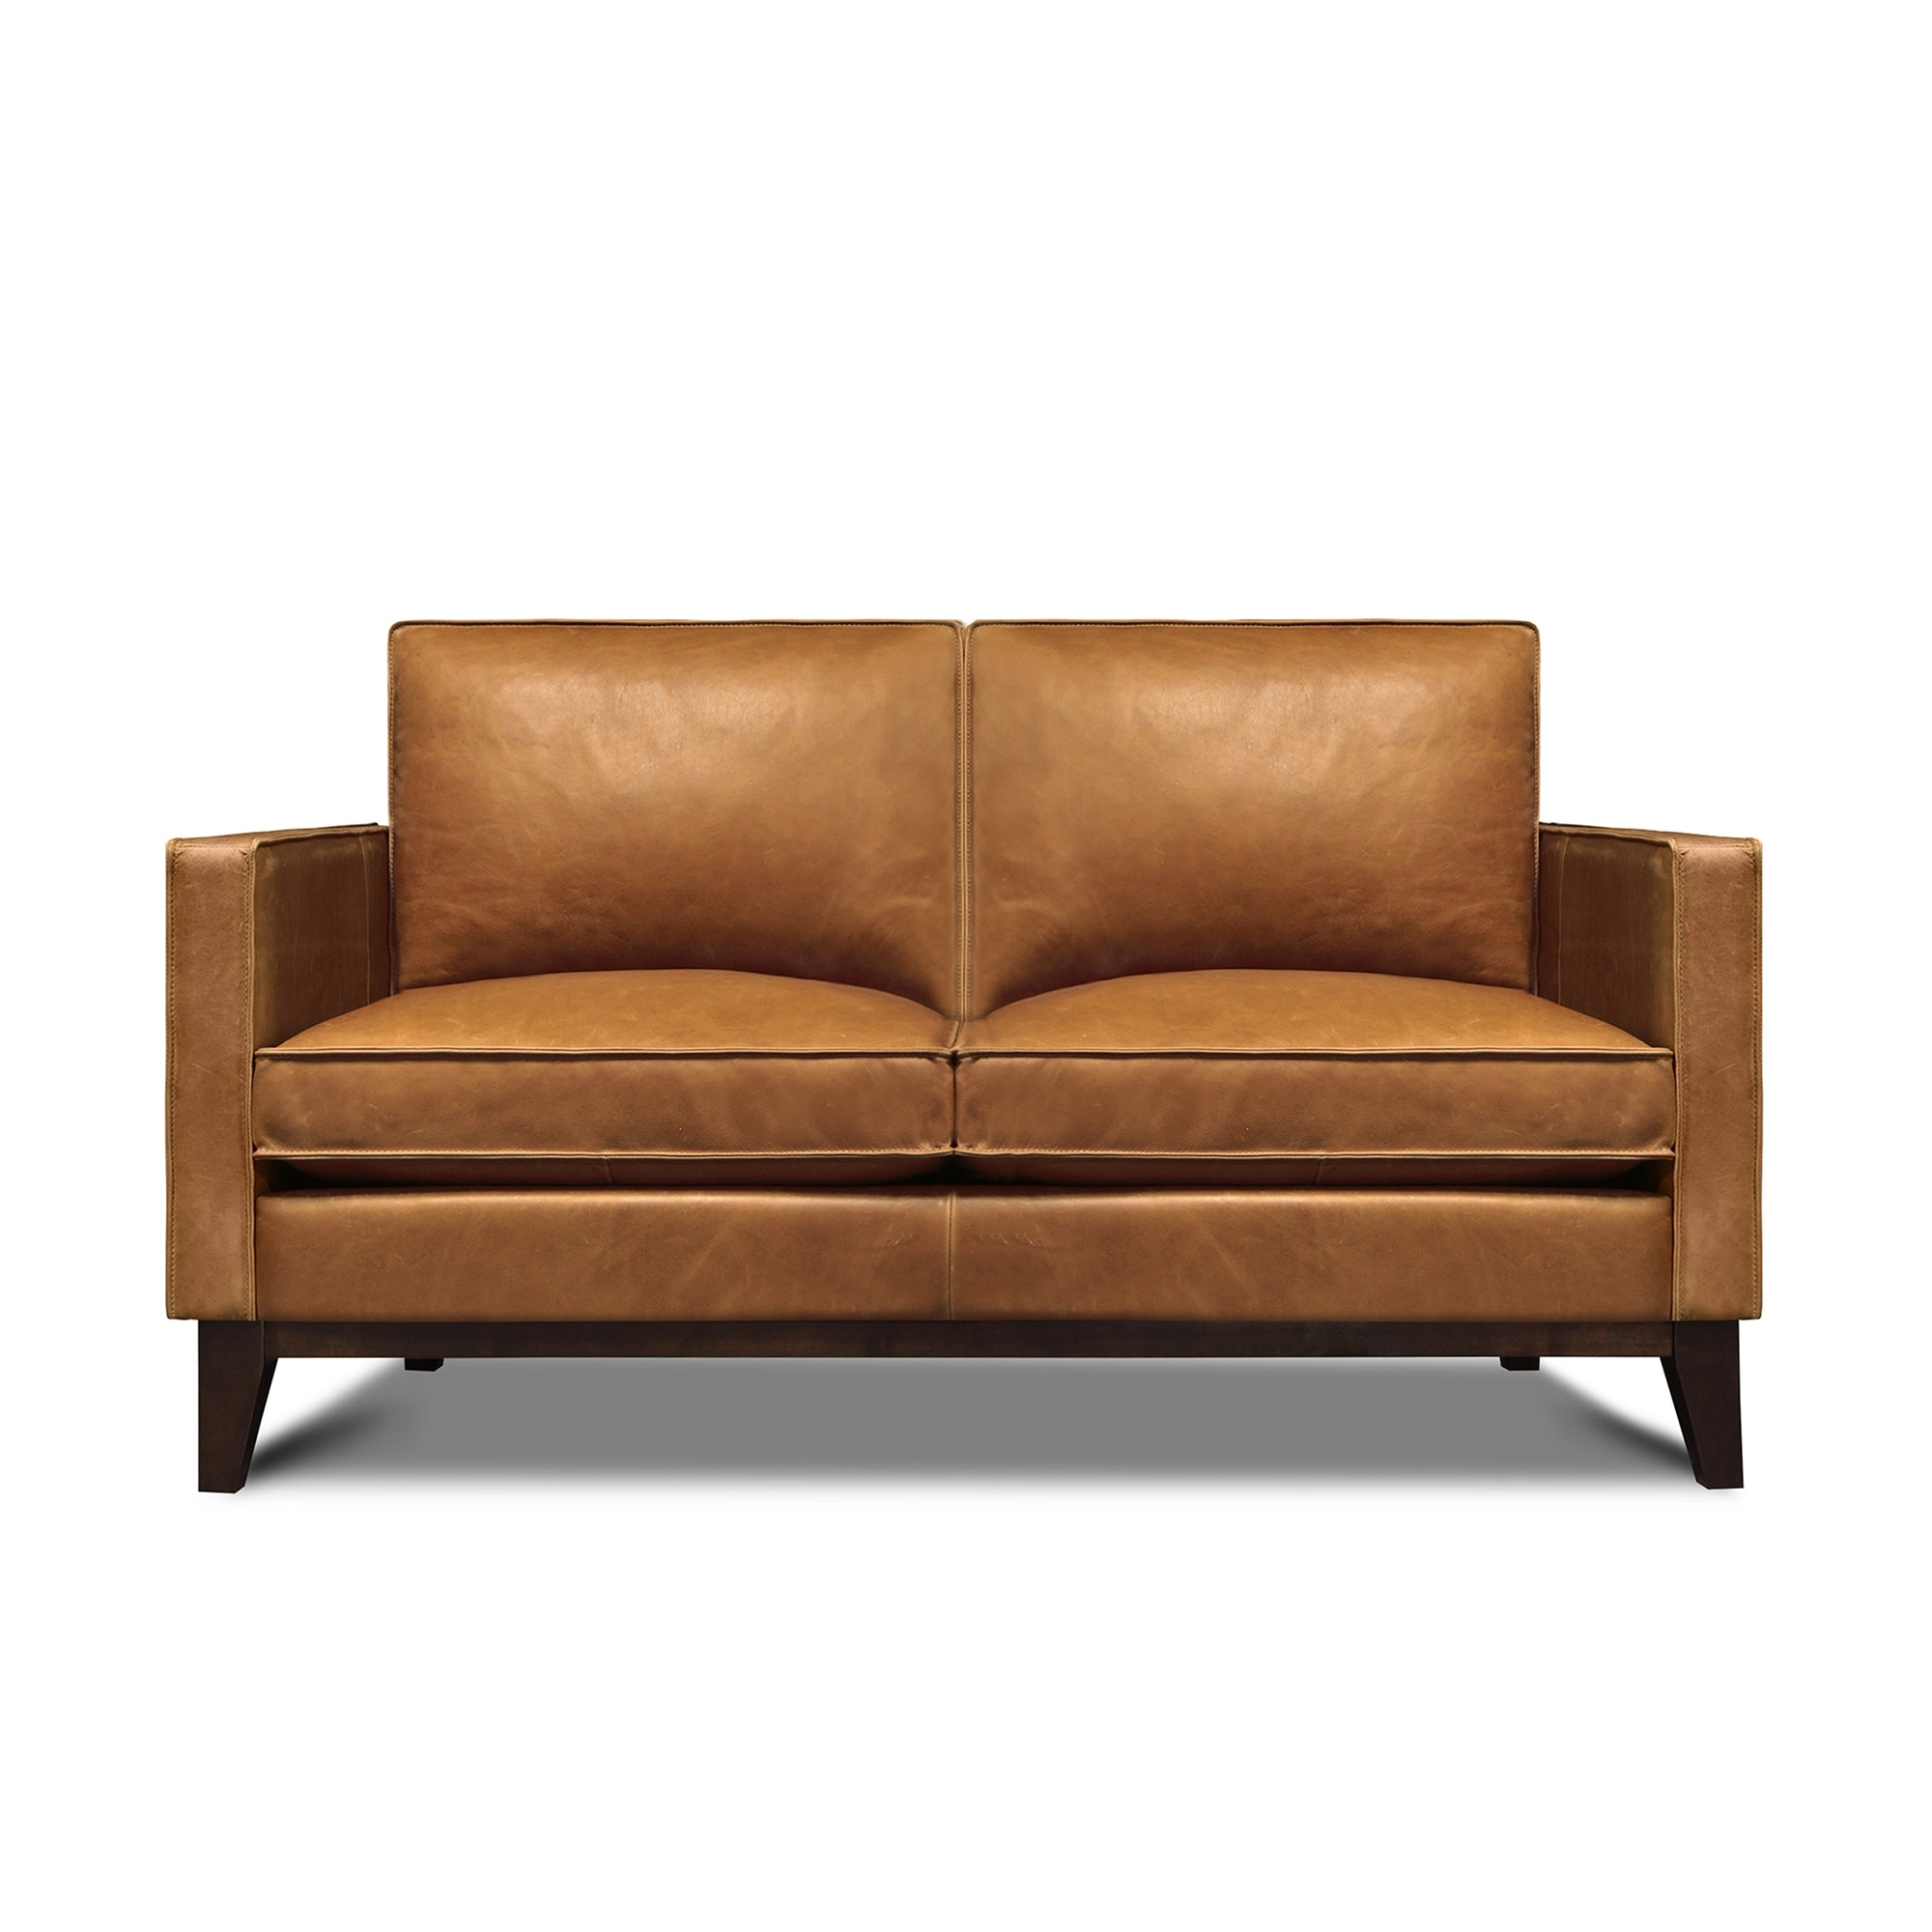 Image of: Shop Black Friday Deals On Metropole 100 Top Grain Pull Up Leather Mid Century Loveseat Overstock 31756062